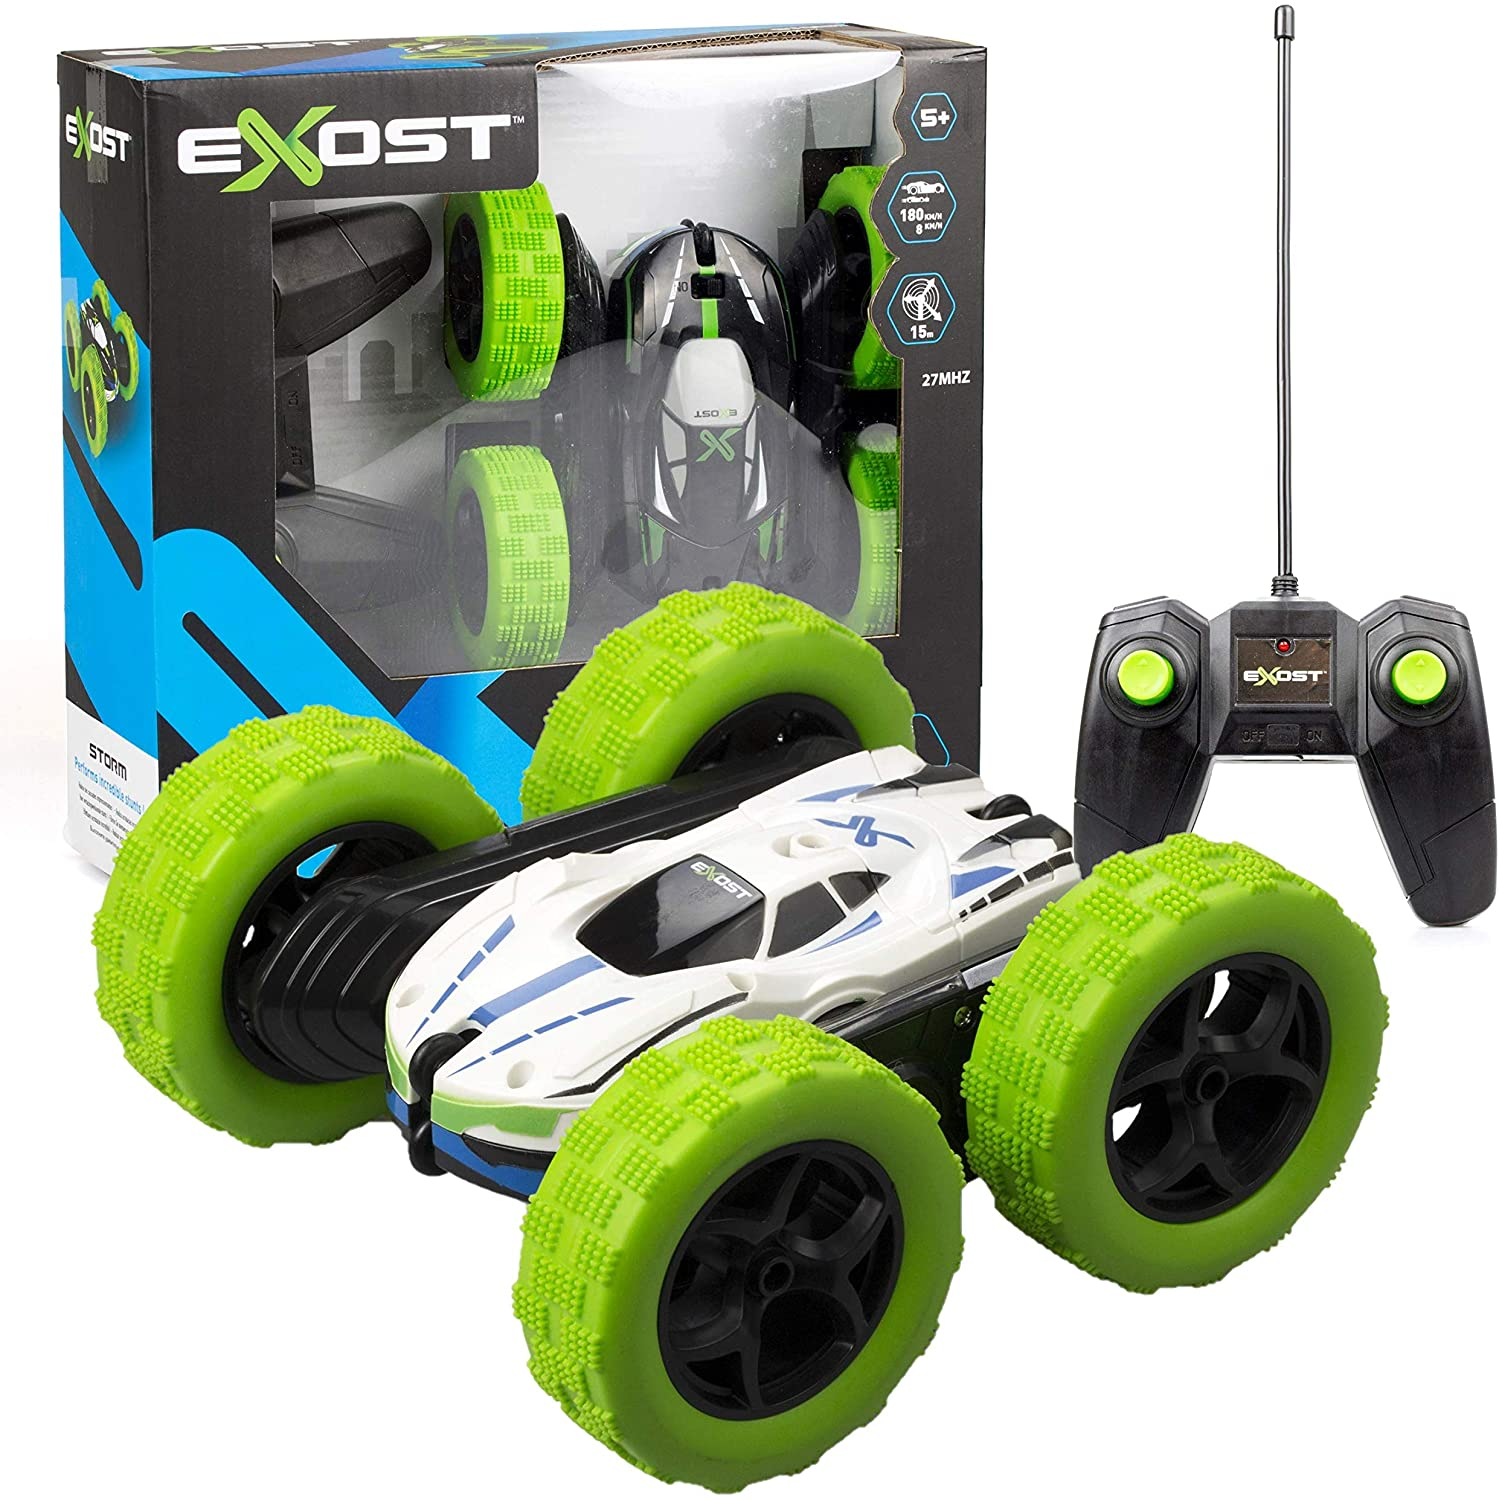 exost-storm-green-2021-2-24